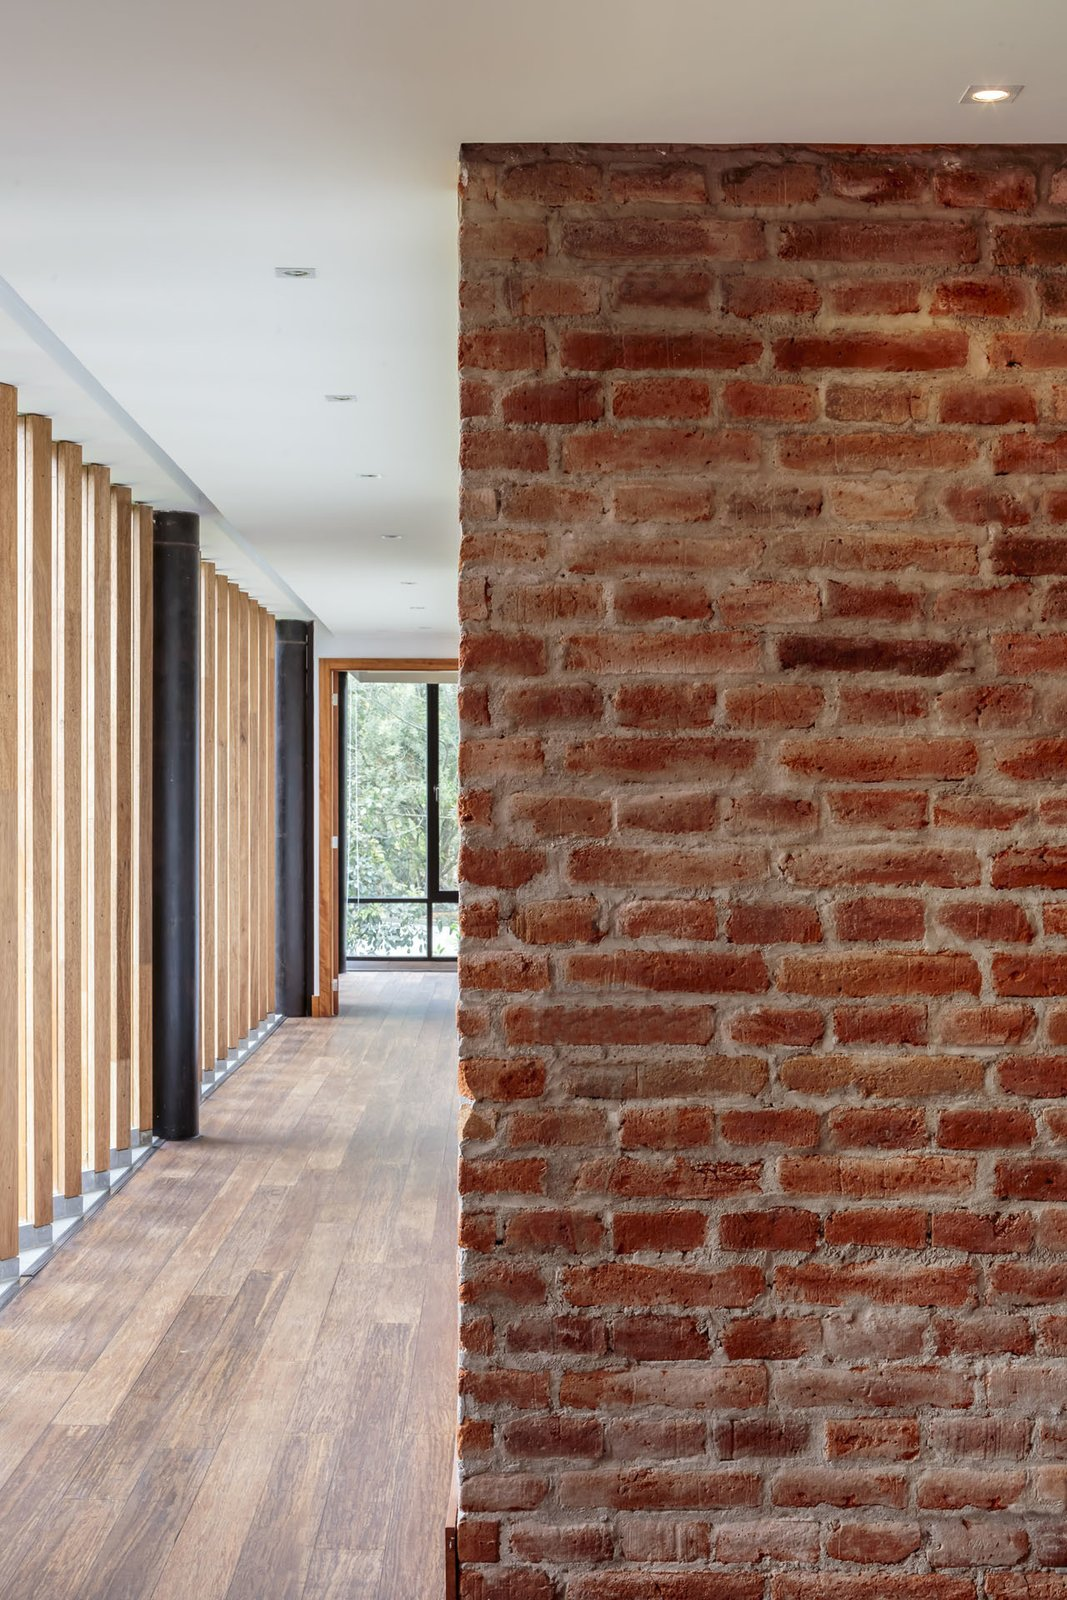 Burneo added exposed brick to his palette of interior materials. Revealing the Pros and Cons of Exposed Brick and How to Take Care of It - Photo 6 of 10